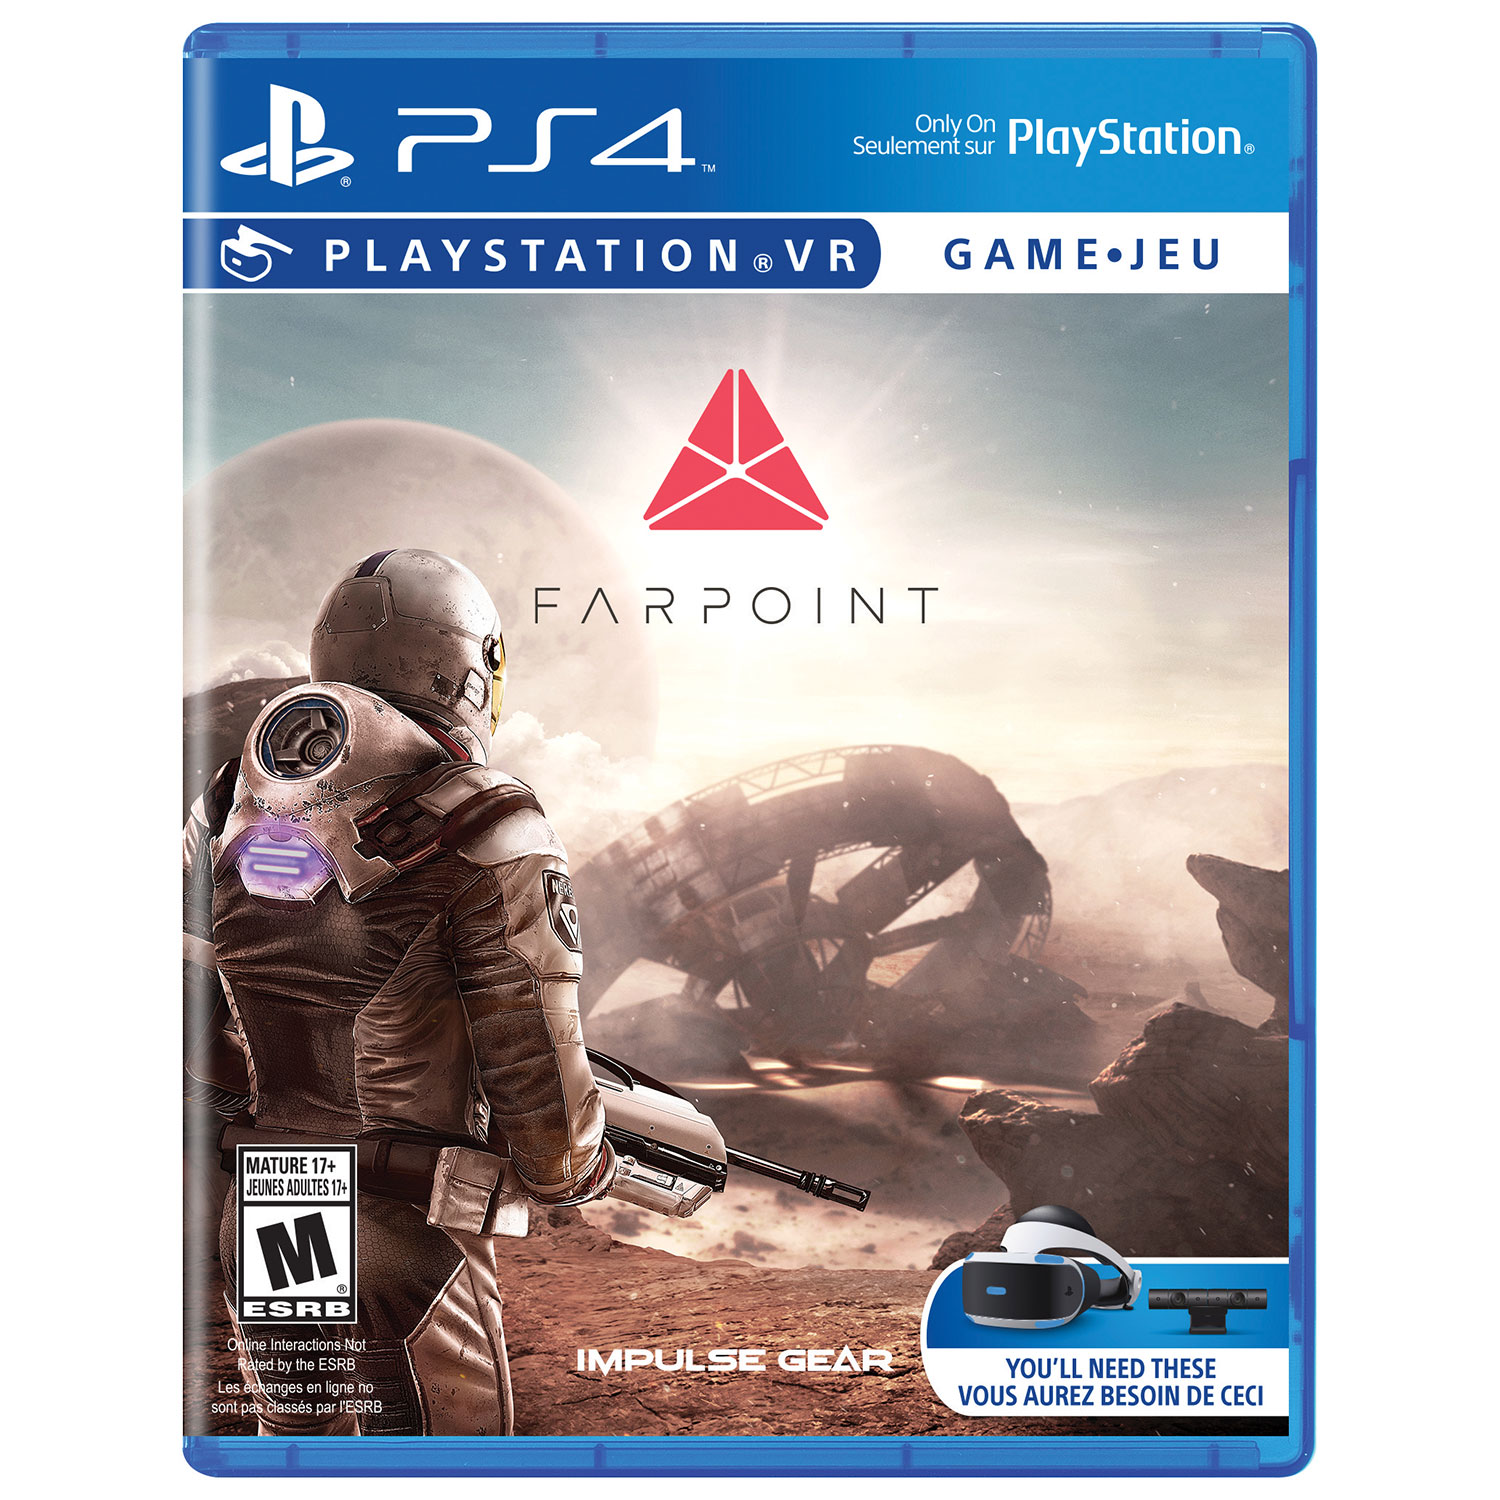 playstation games best ps games best buy farpoint for playstation vr ps4